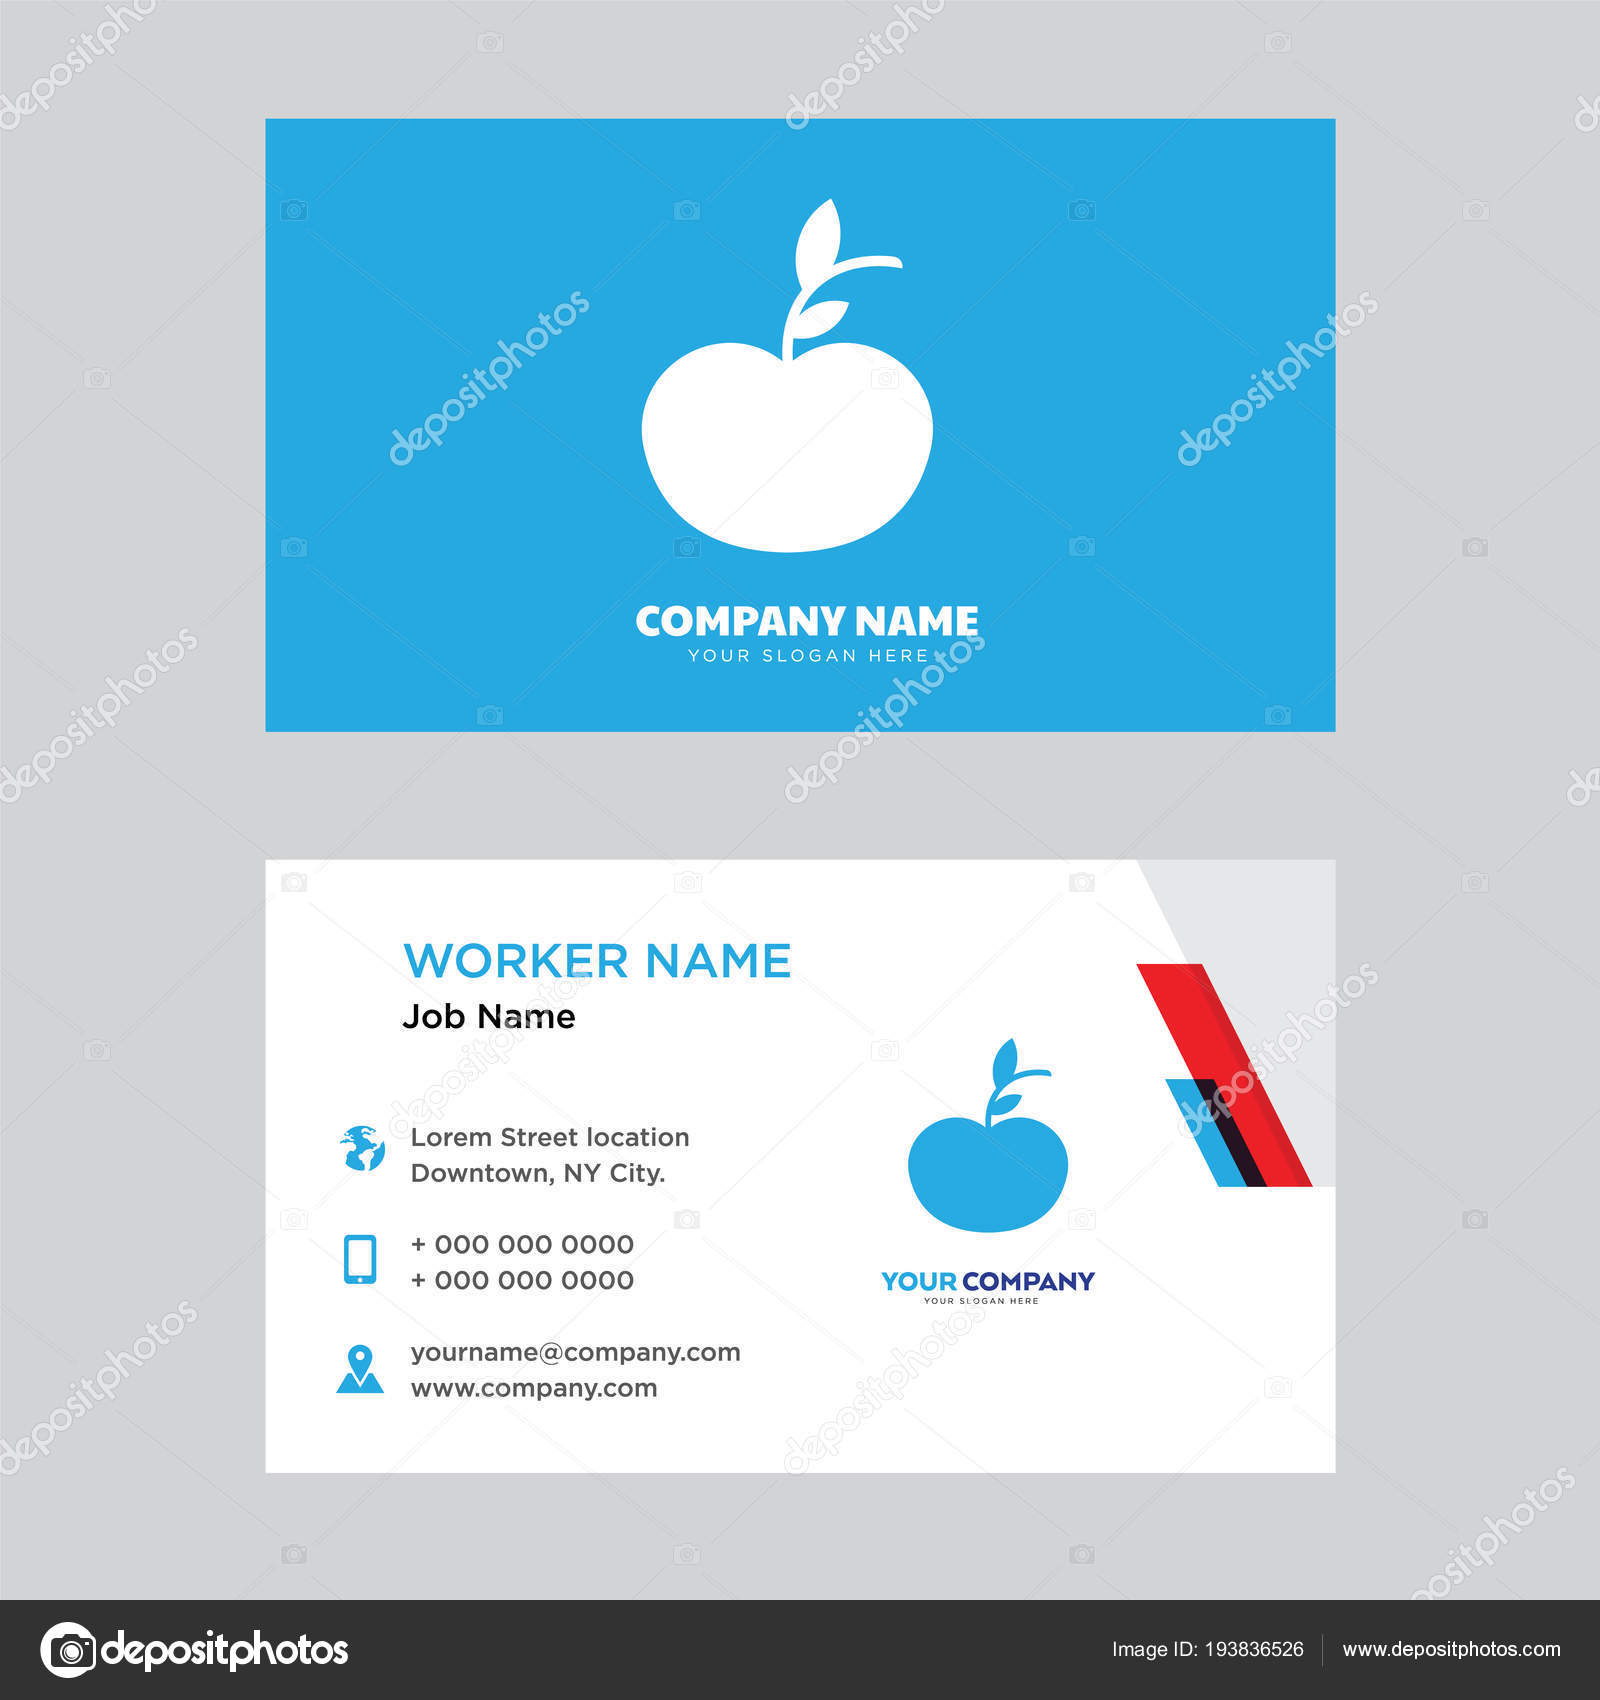 Apple business card design stock vector vectorbest 193836526 apple business card design template visiting for your company modern creative and clean identity card vector vector by vectorbest colourmoves